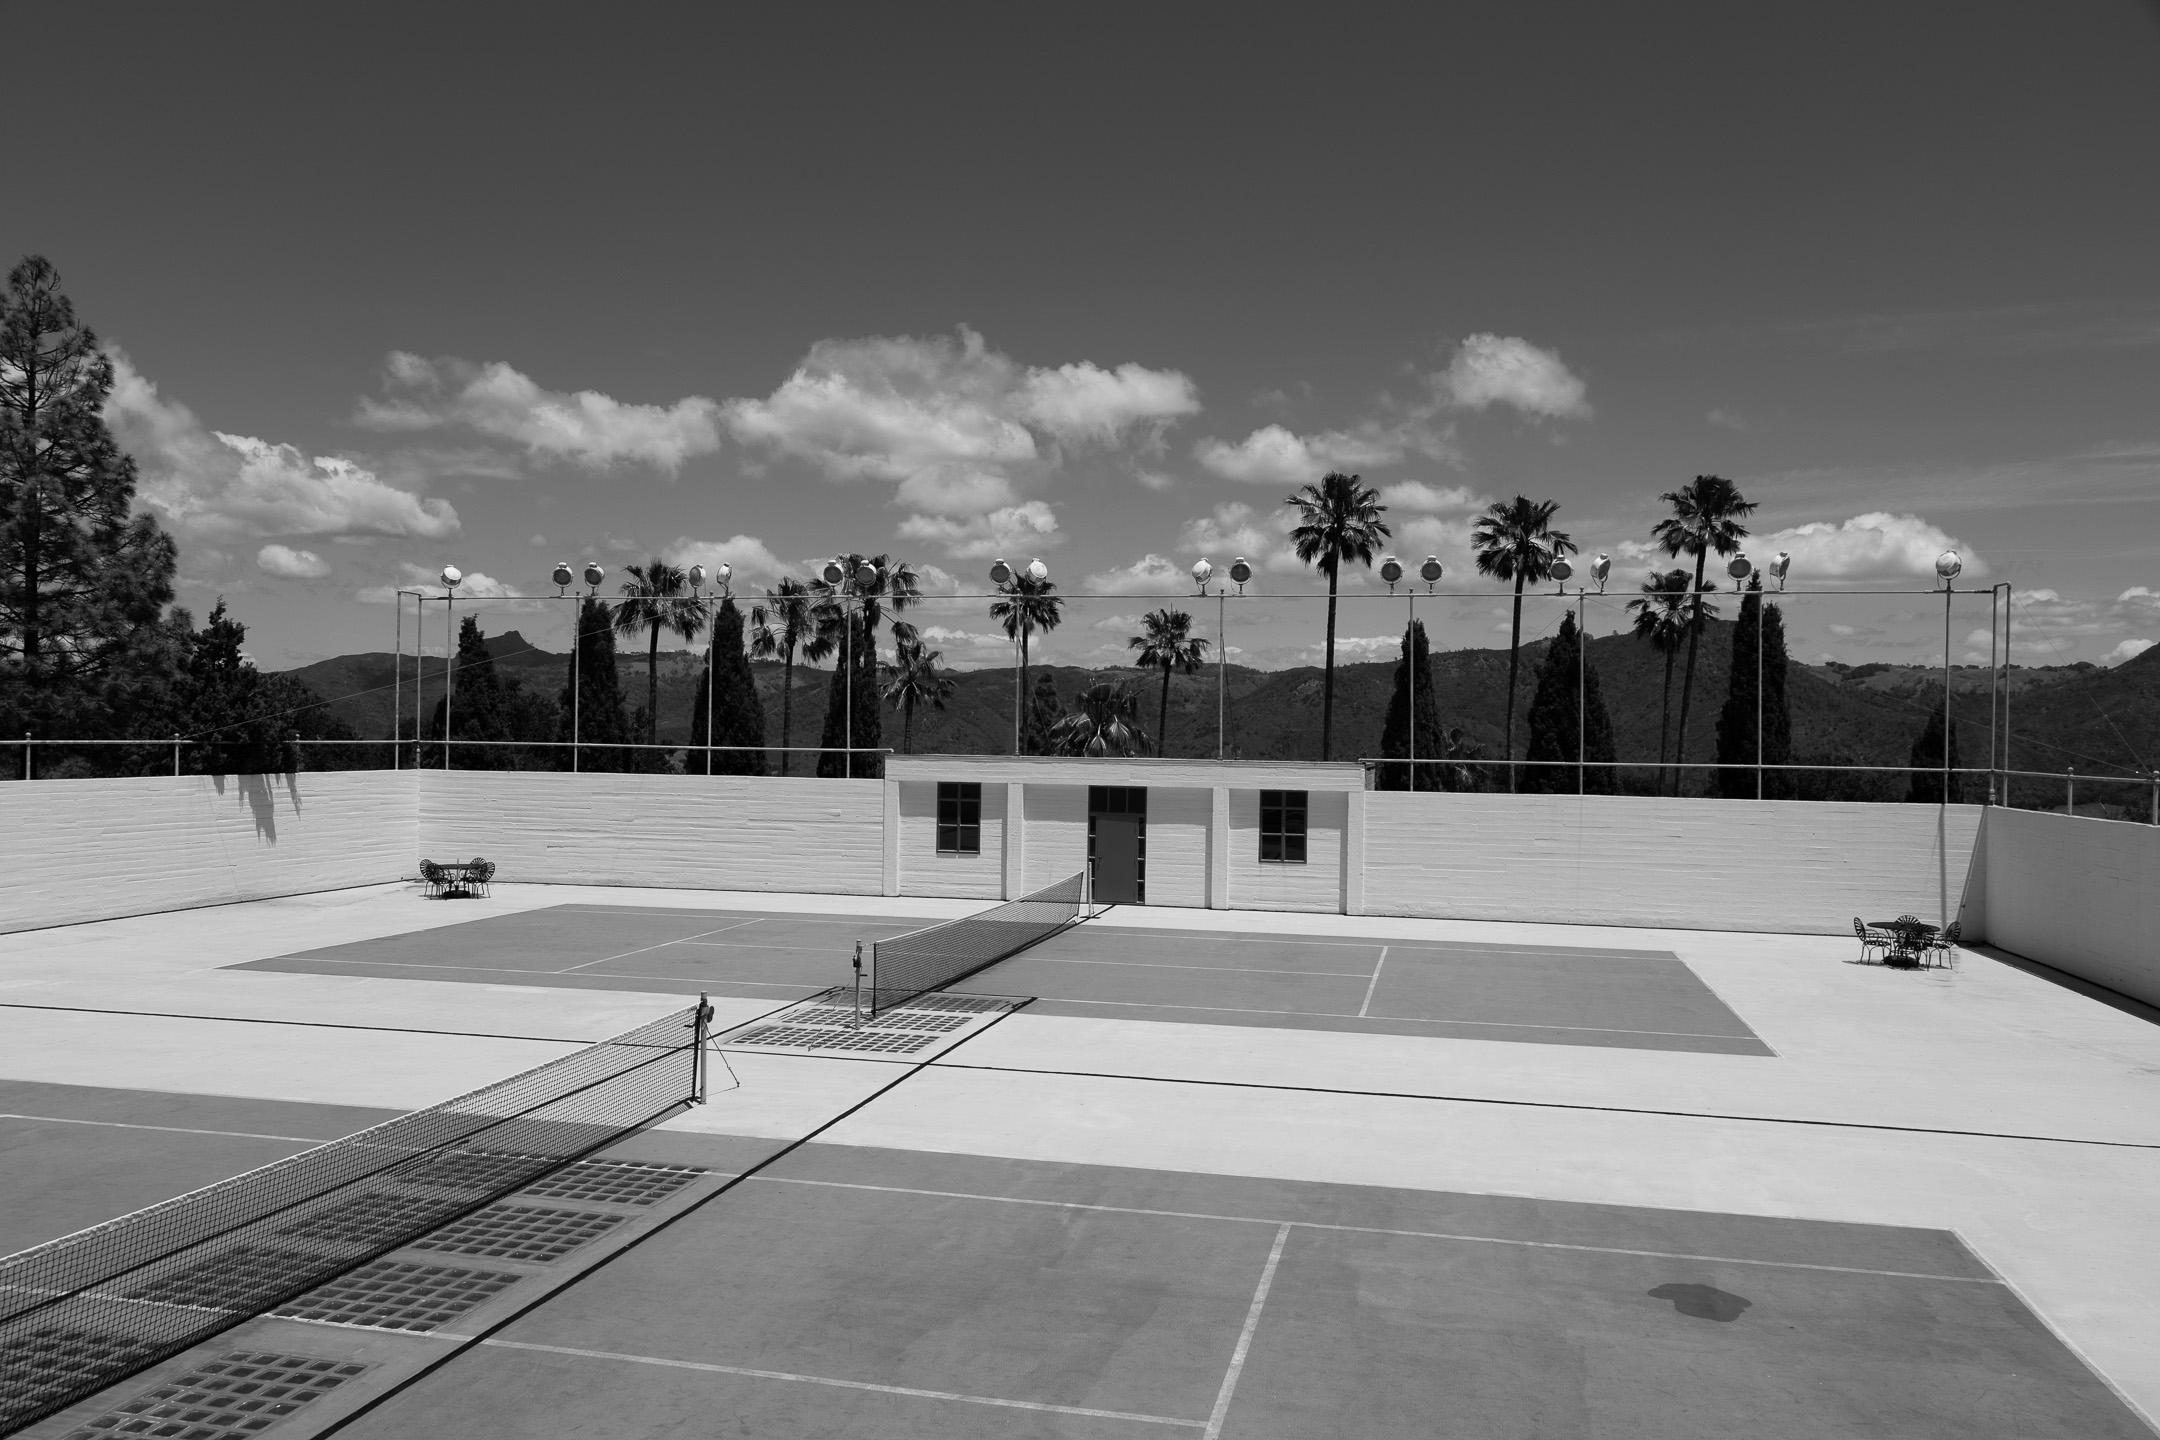 HearstCastleTennisCourts5.24.19copy